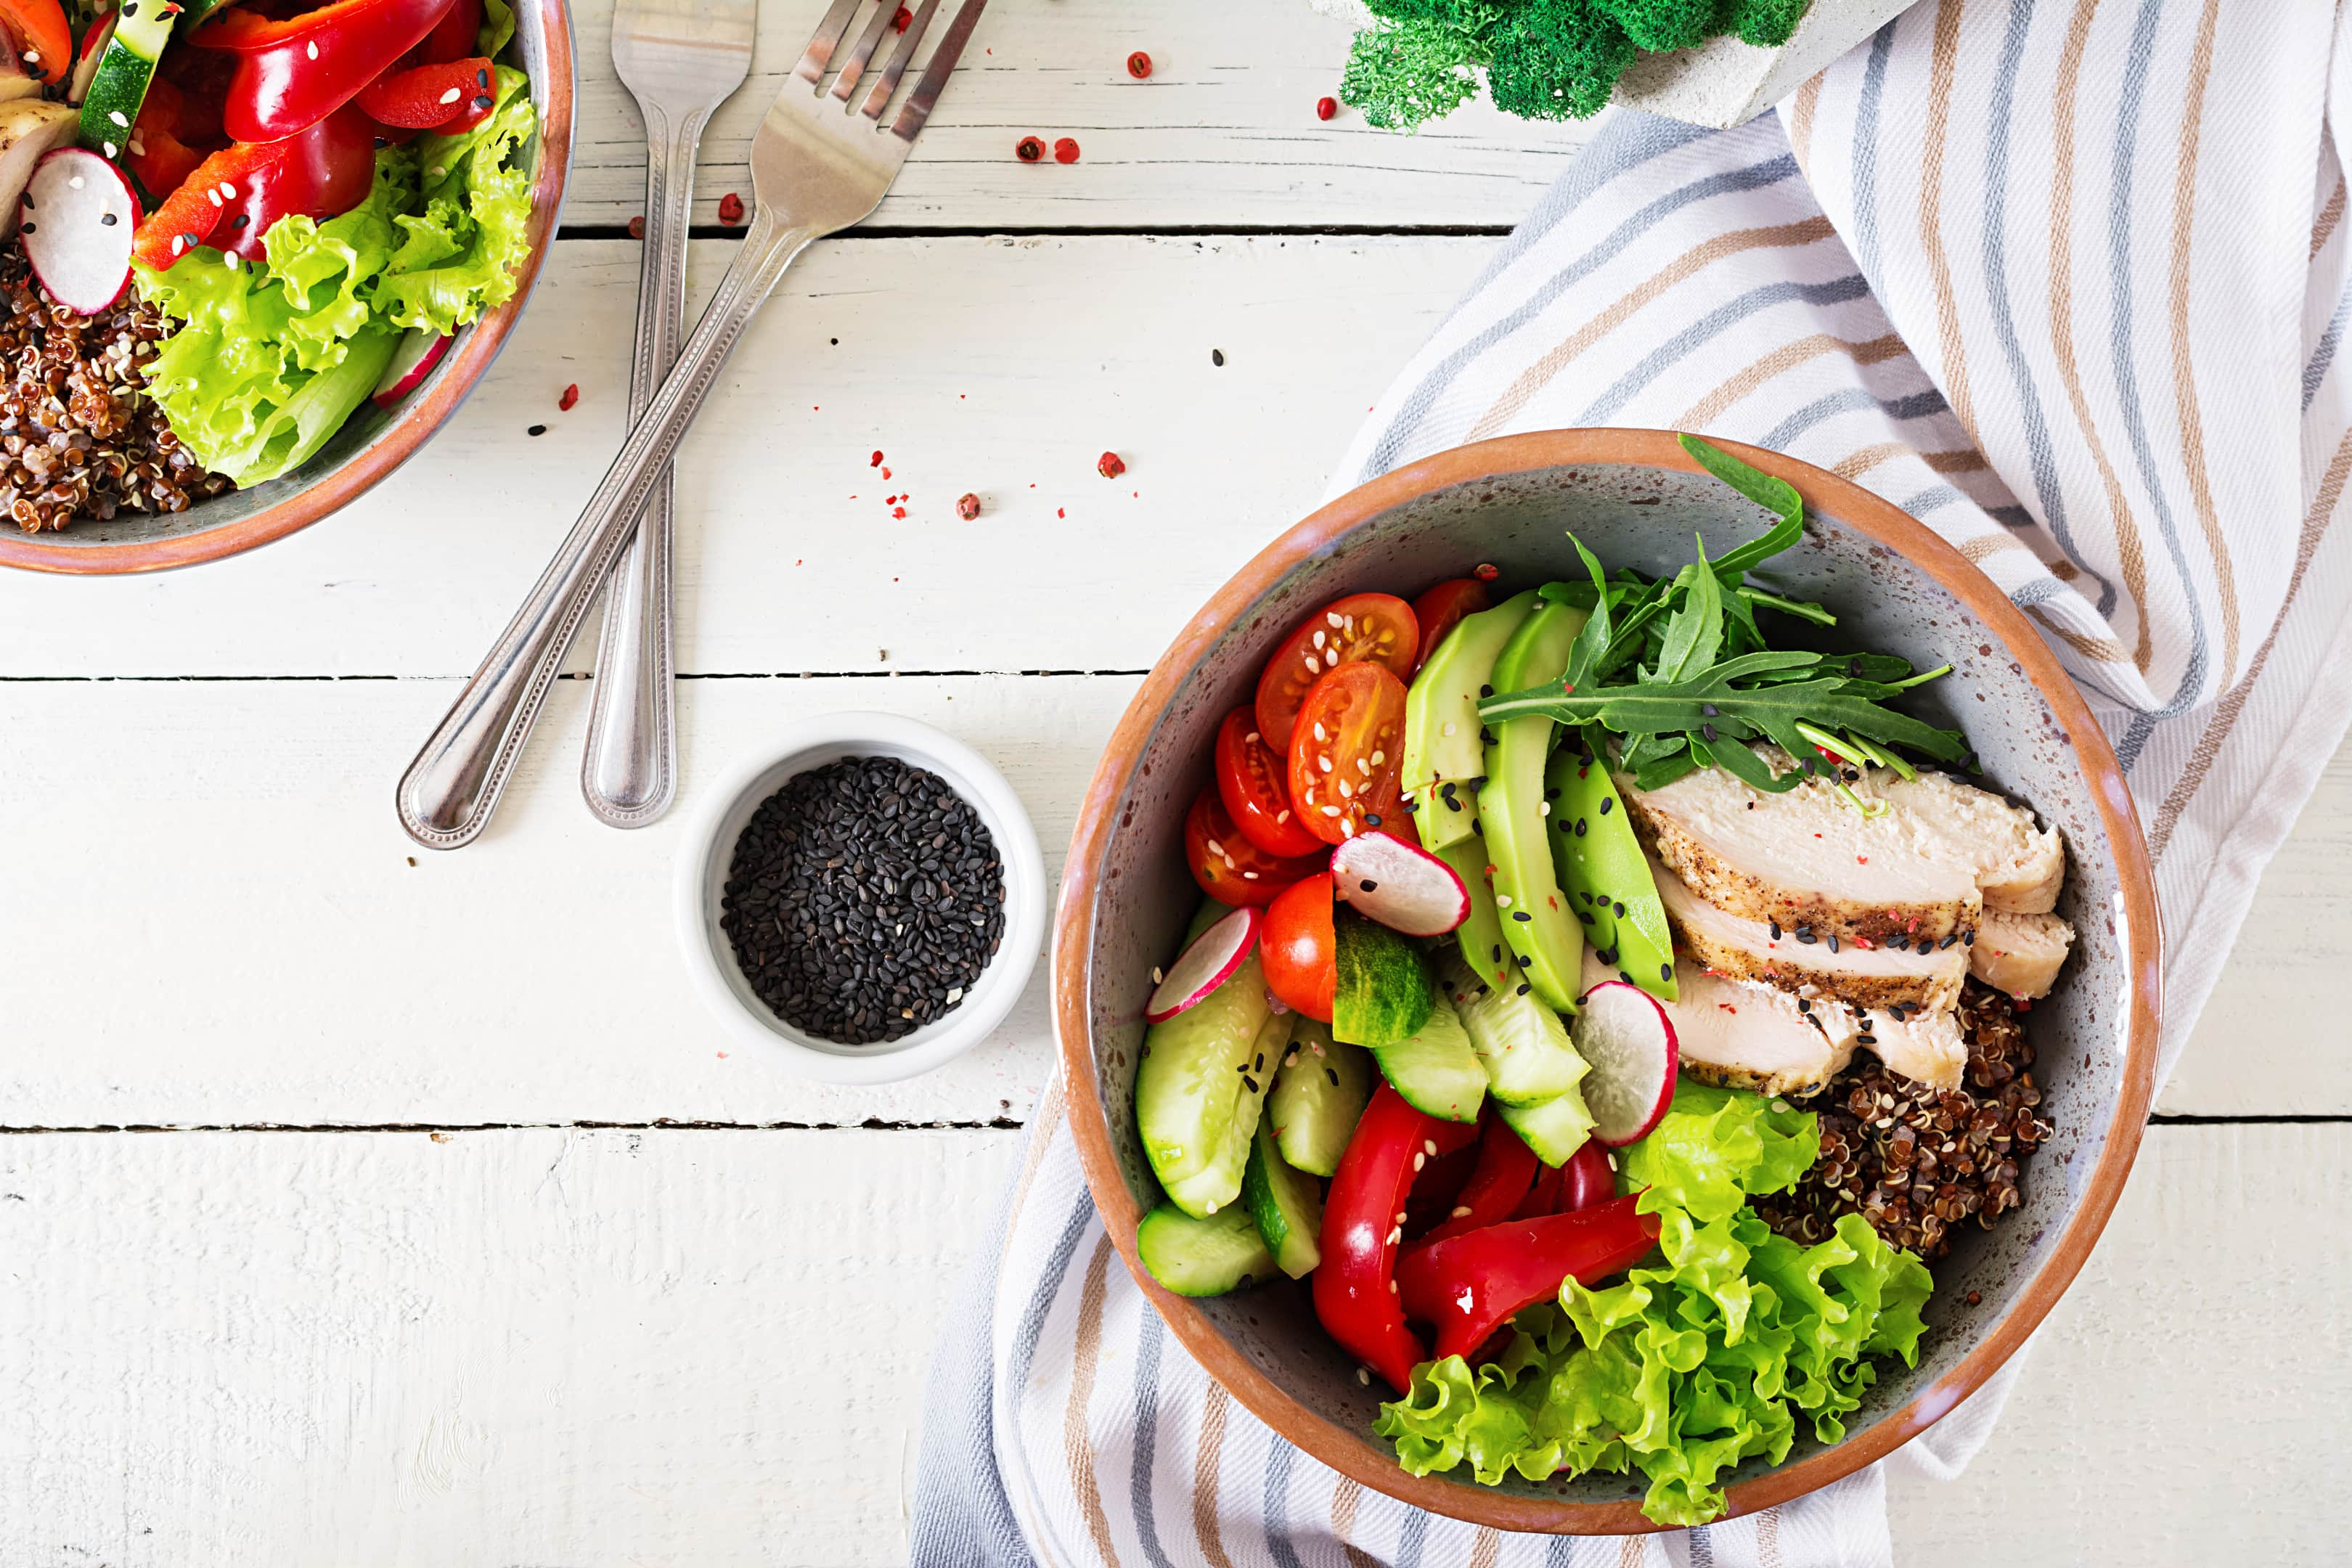 Buddha bowl dish with chicken fillet and quinoa